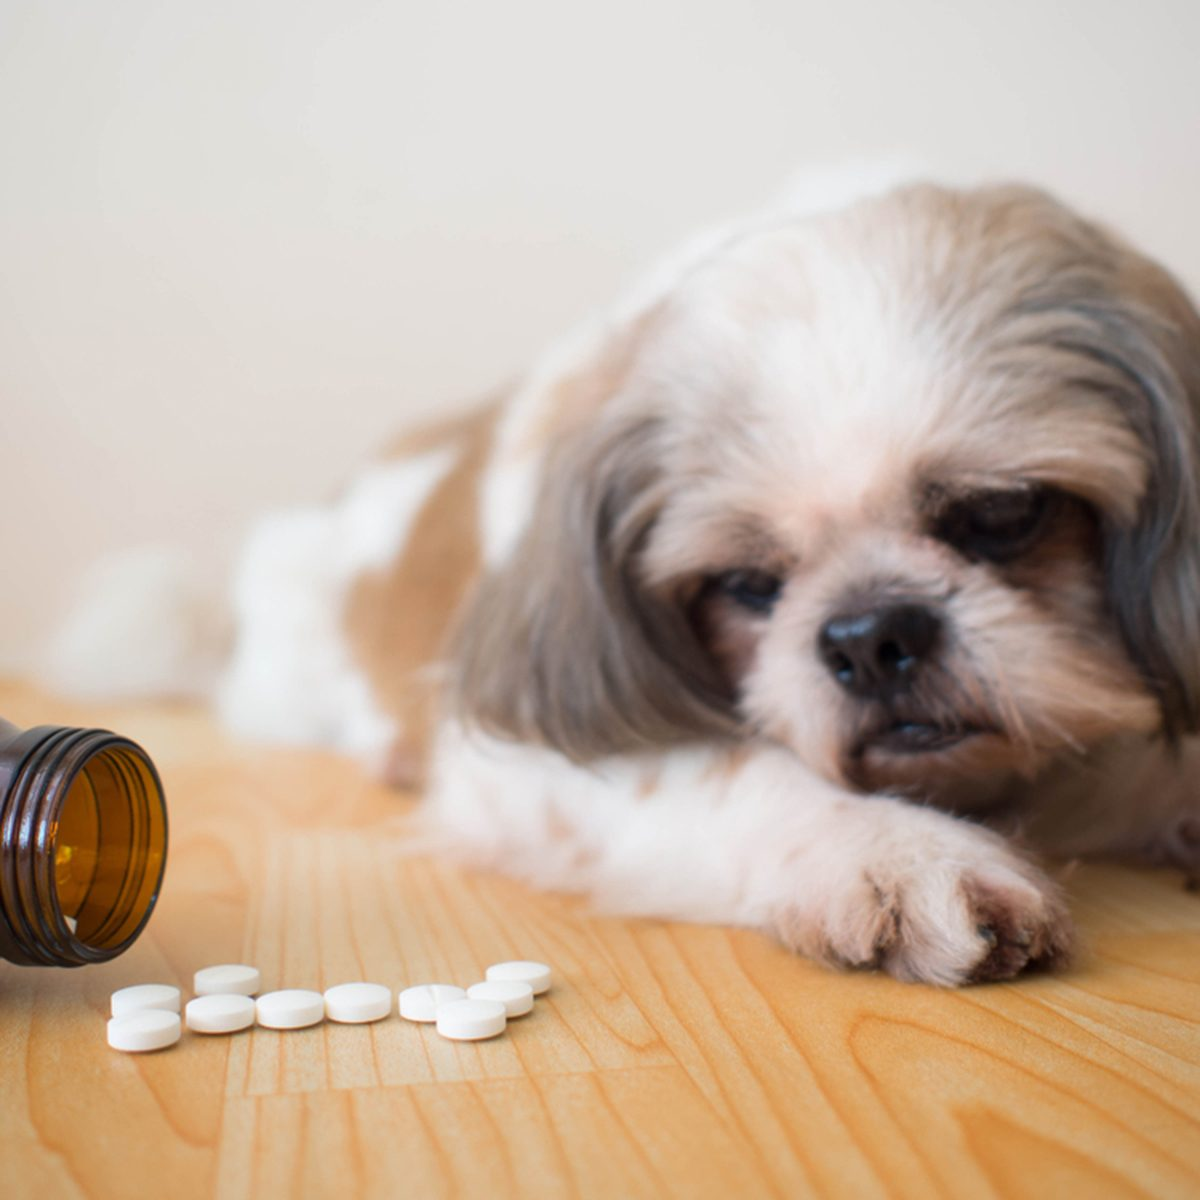 White medicine pills spilling out of bottle on wooden floor with blurred cute Shih tzu dog background